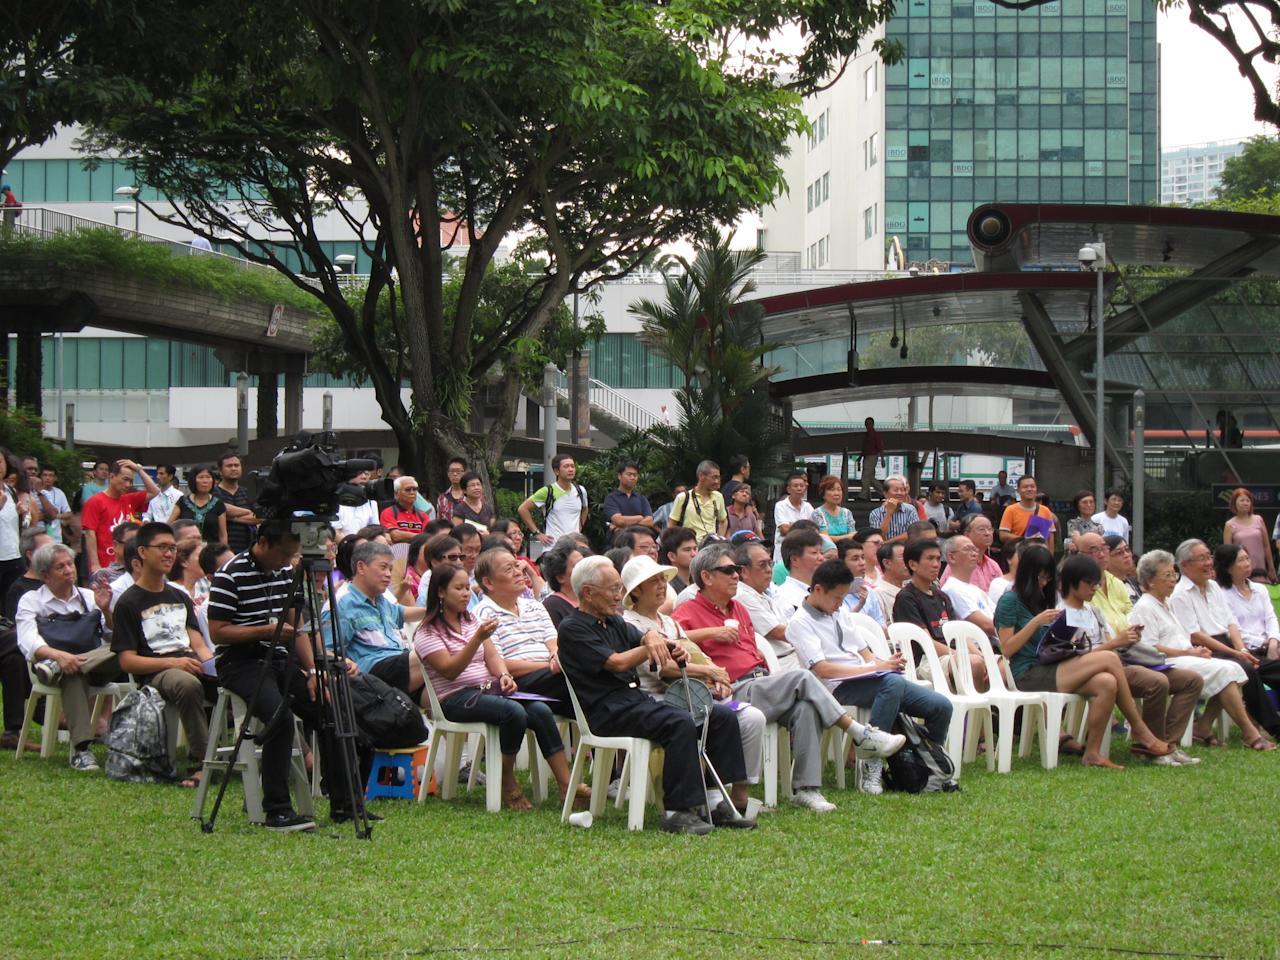 The crowd present at the event.